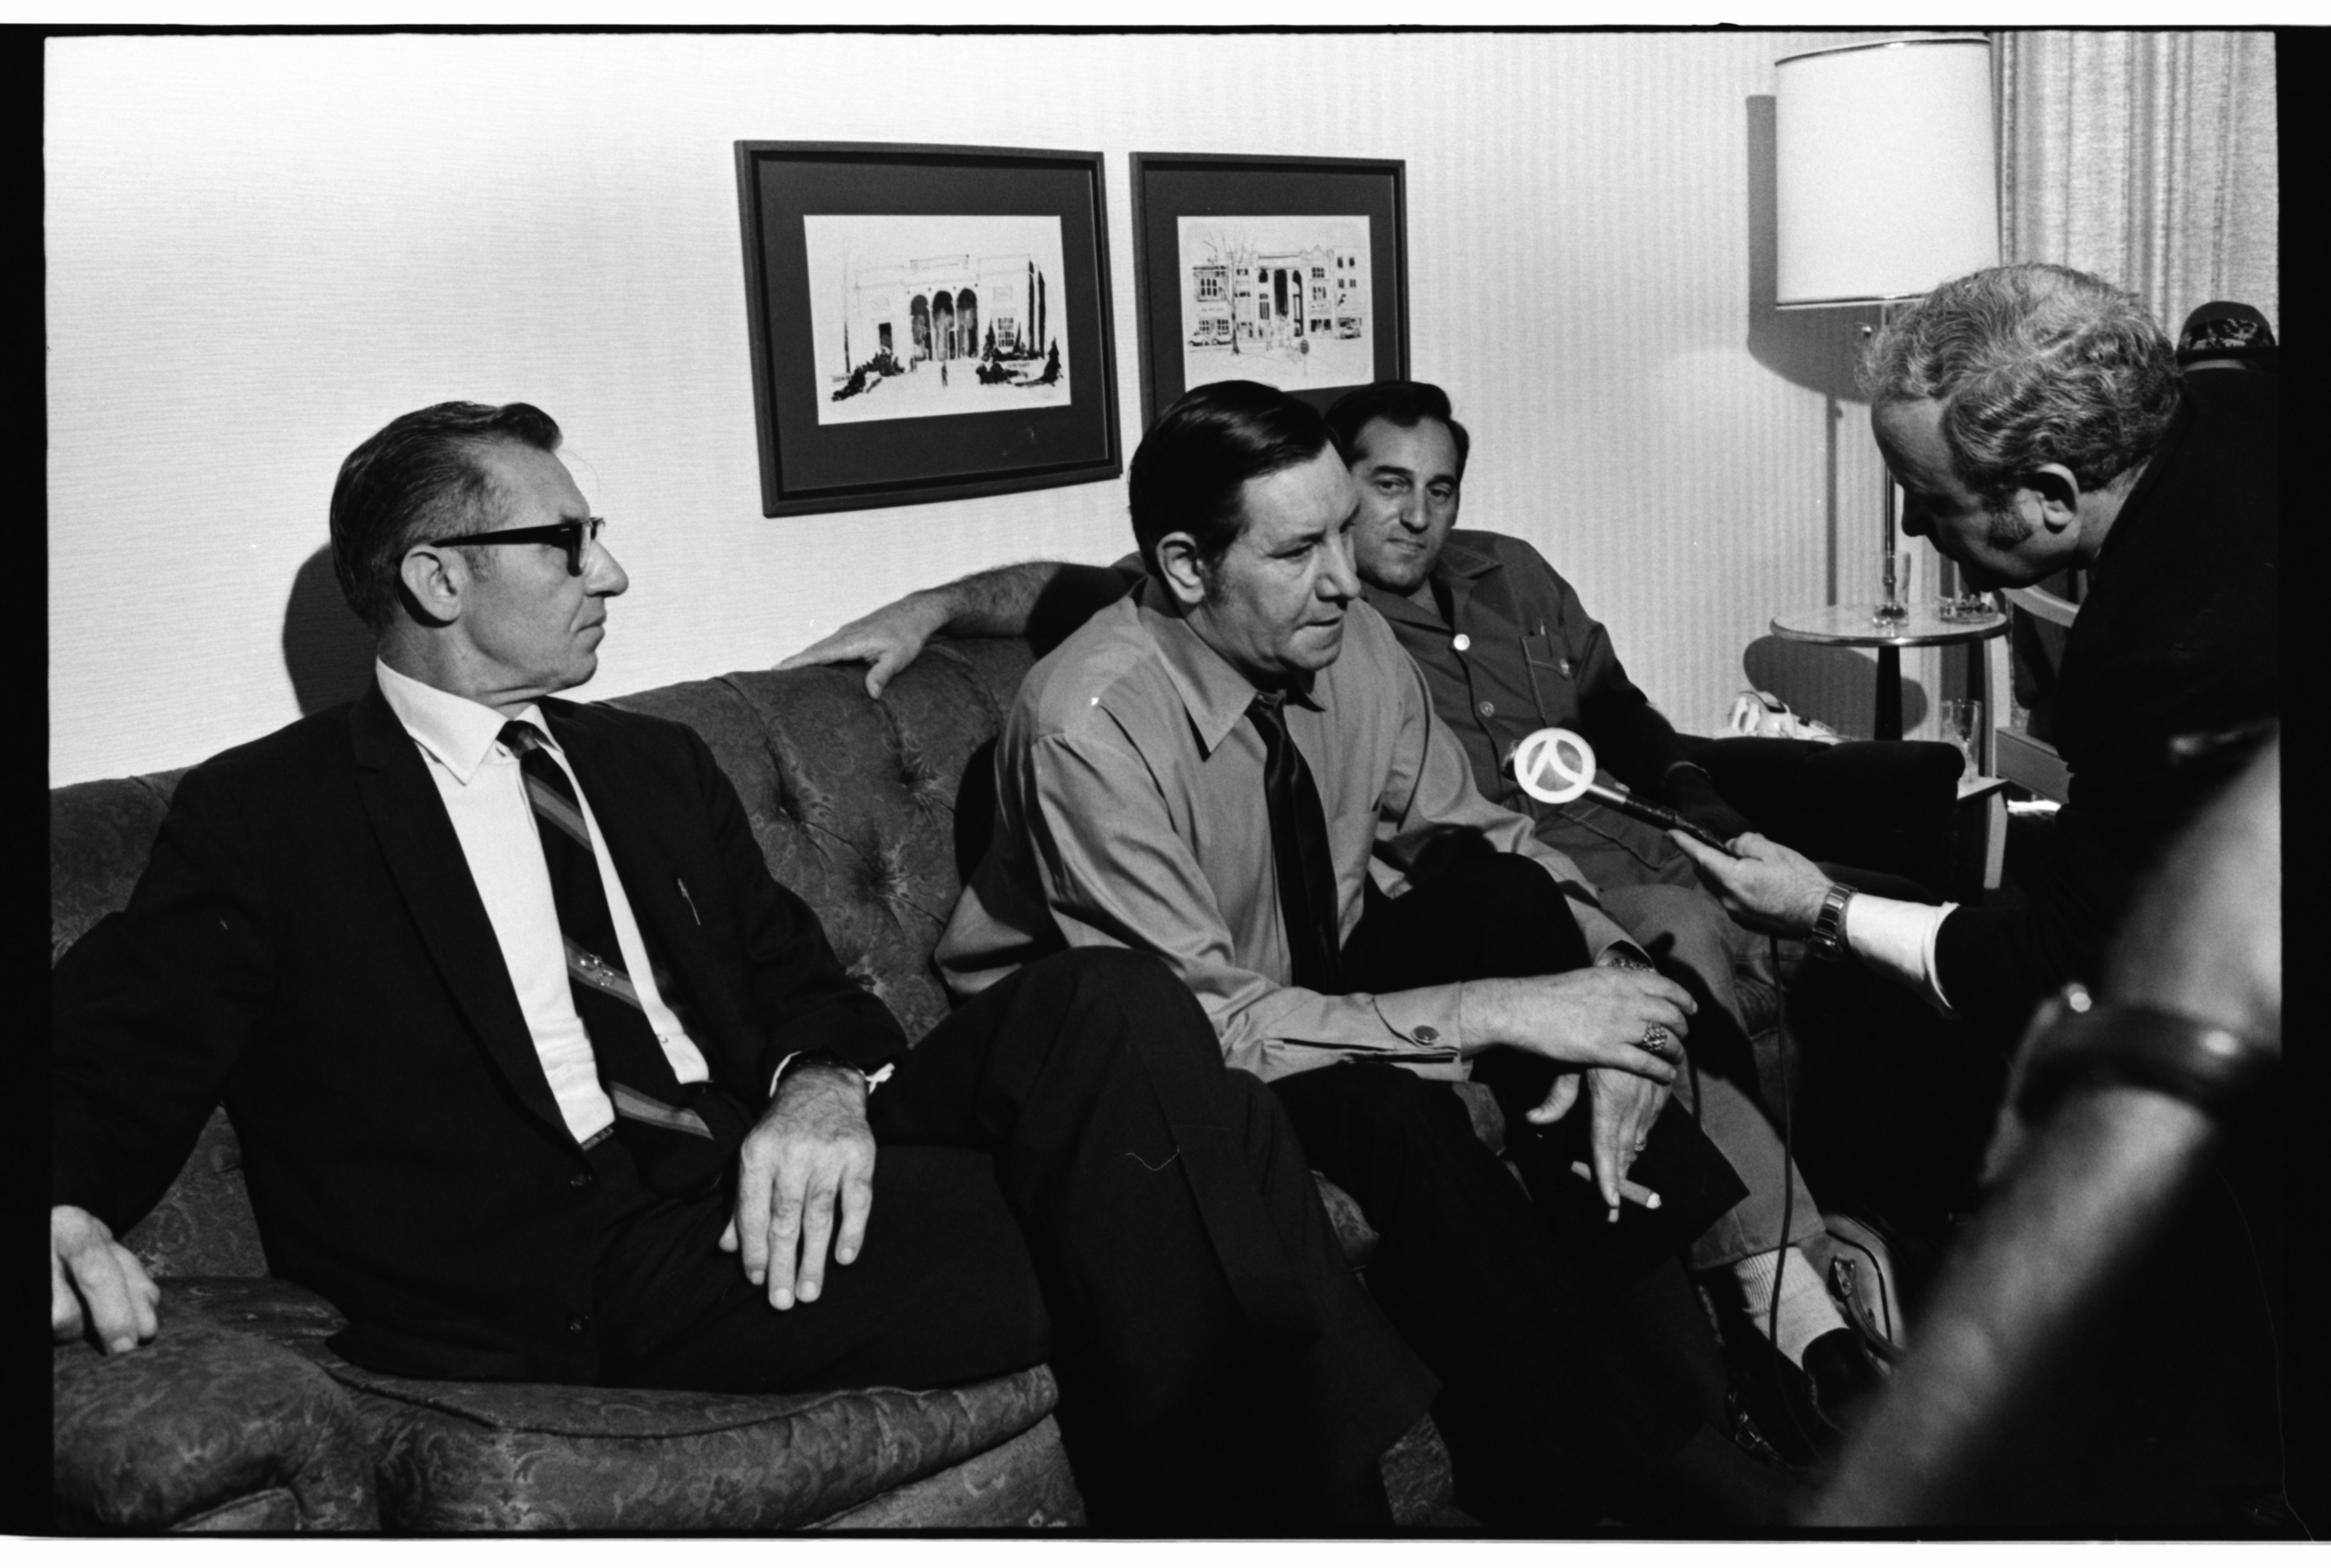 Ann Arbor Police Department - Chief of Police Walter E. Krasny Confers With Psychic Peter Hurkos and Ed Silver on Coed Murders, July 1969 image